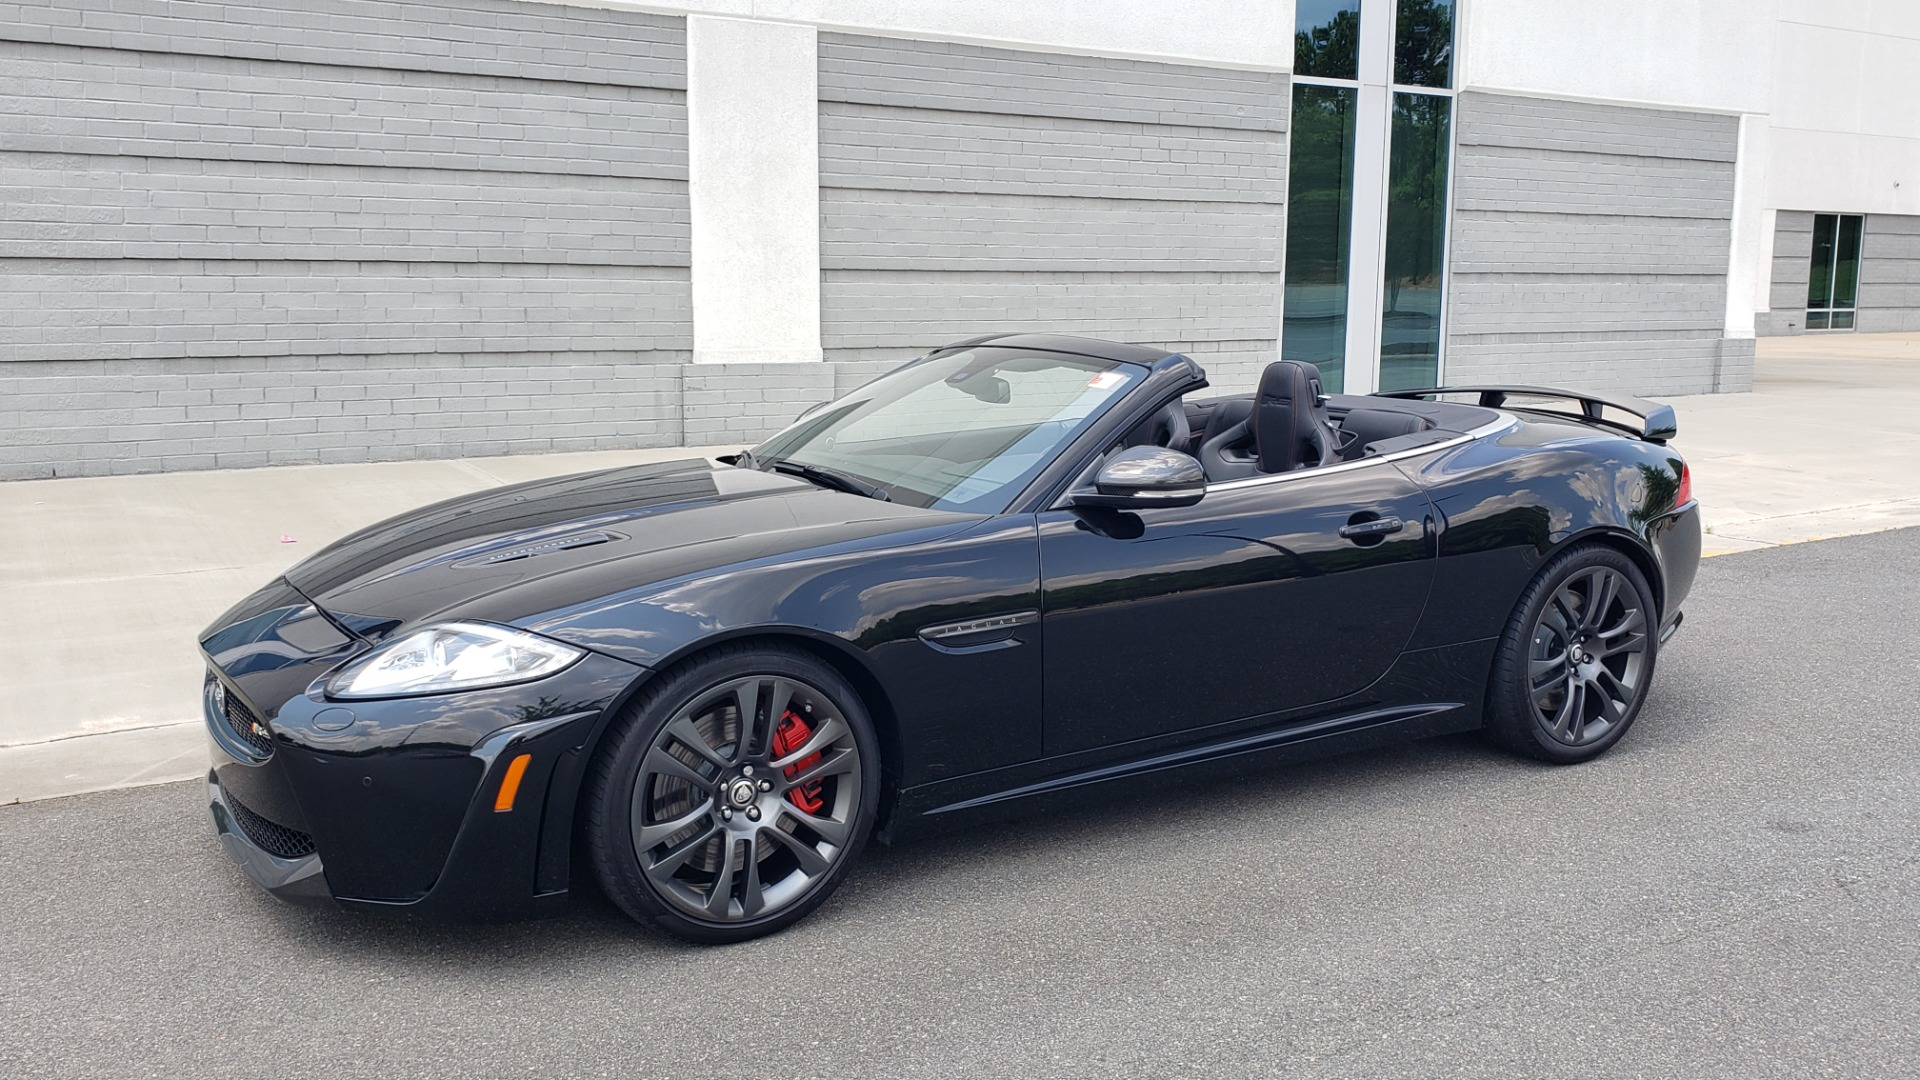 Used 2013 Jaguar XK R-S CONVERTIBLE / SC 5.0L V8 (550HP) / ZF 6-SPD AUTO / NAV / REARVIEW for sale $74,995 at Formula Imports in Charlotte NC 28227 2